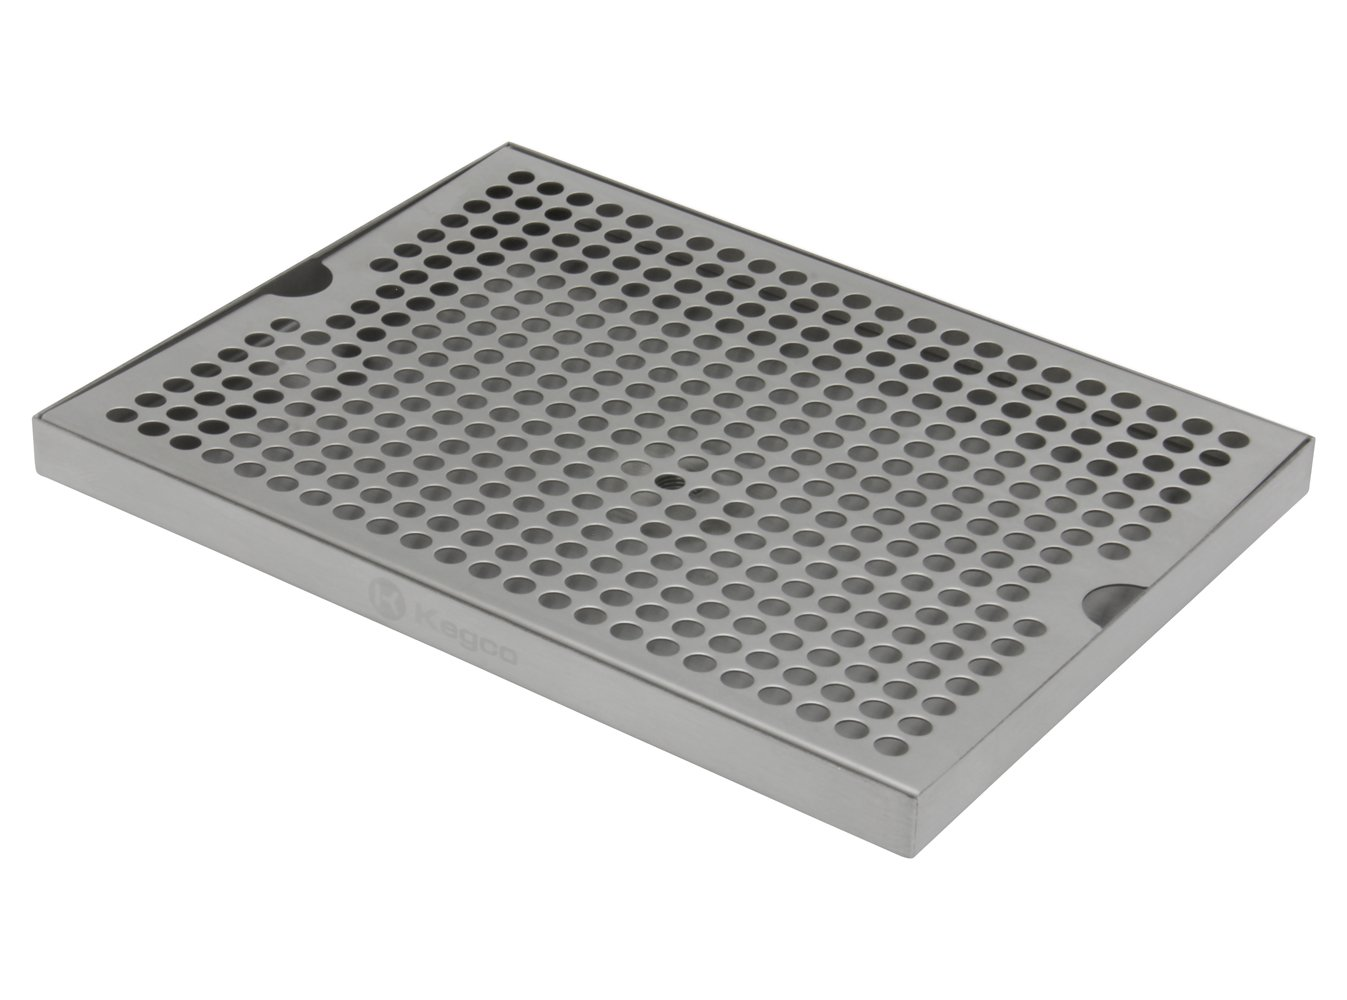 Kegco SESM-129D Stainless Steel 12'' x 9'' Surface Mount Drip Tray with Drain